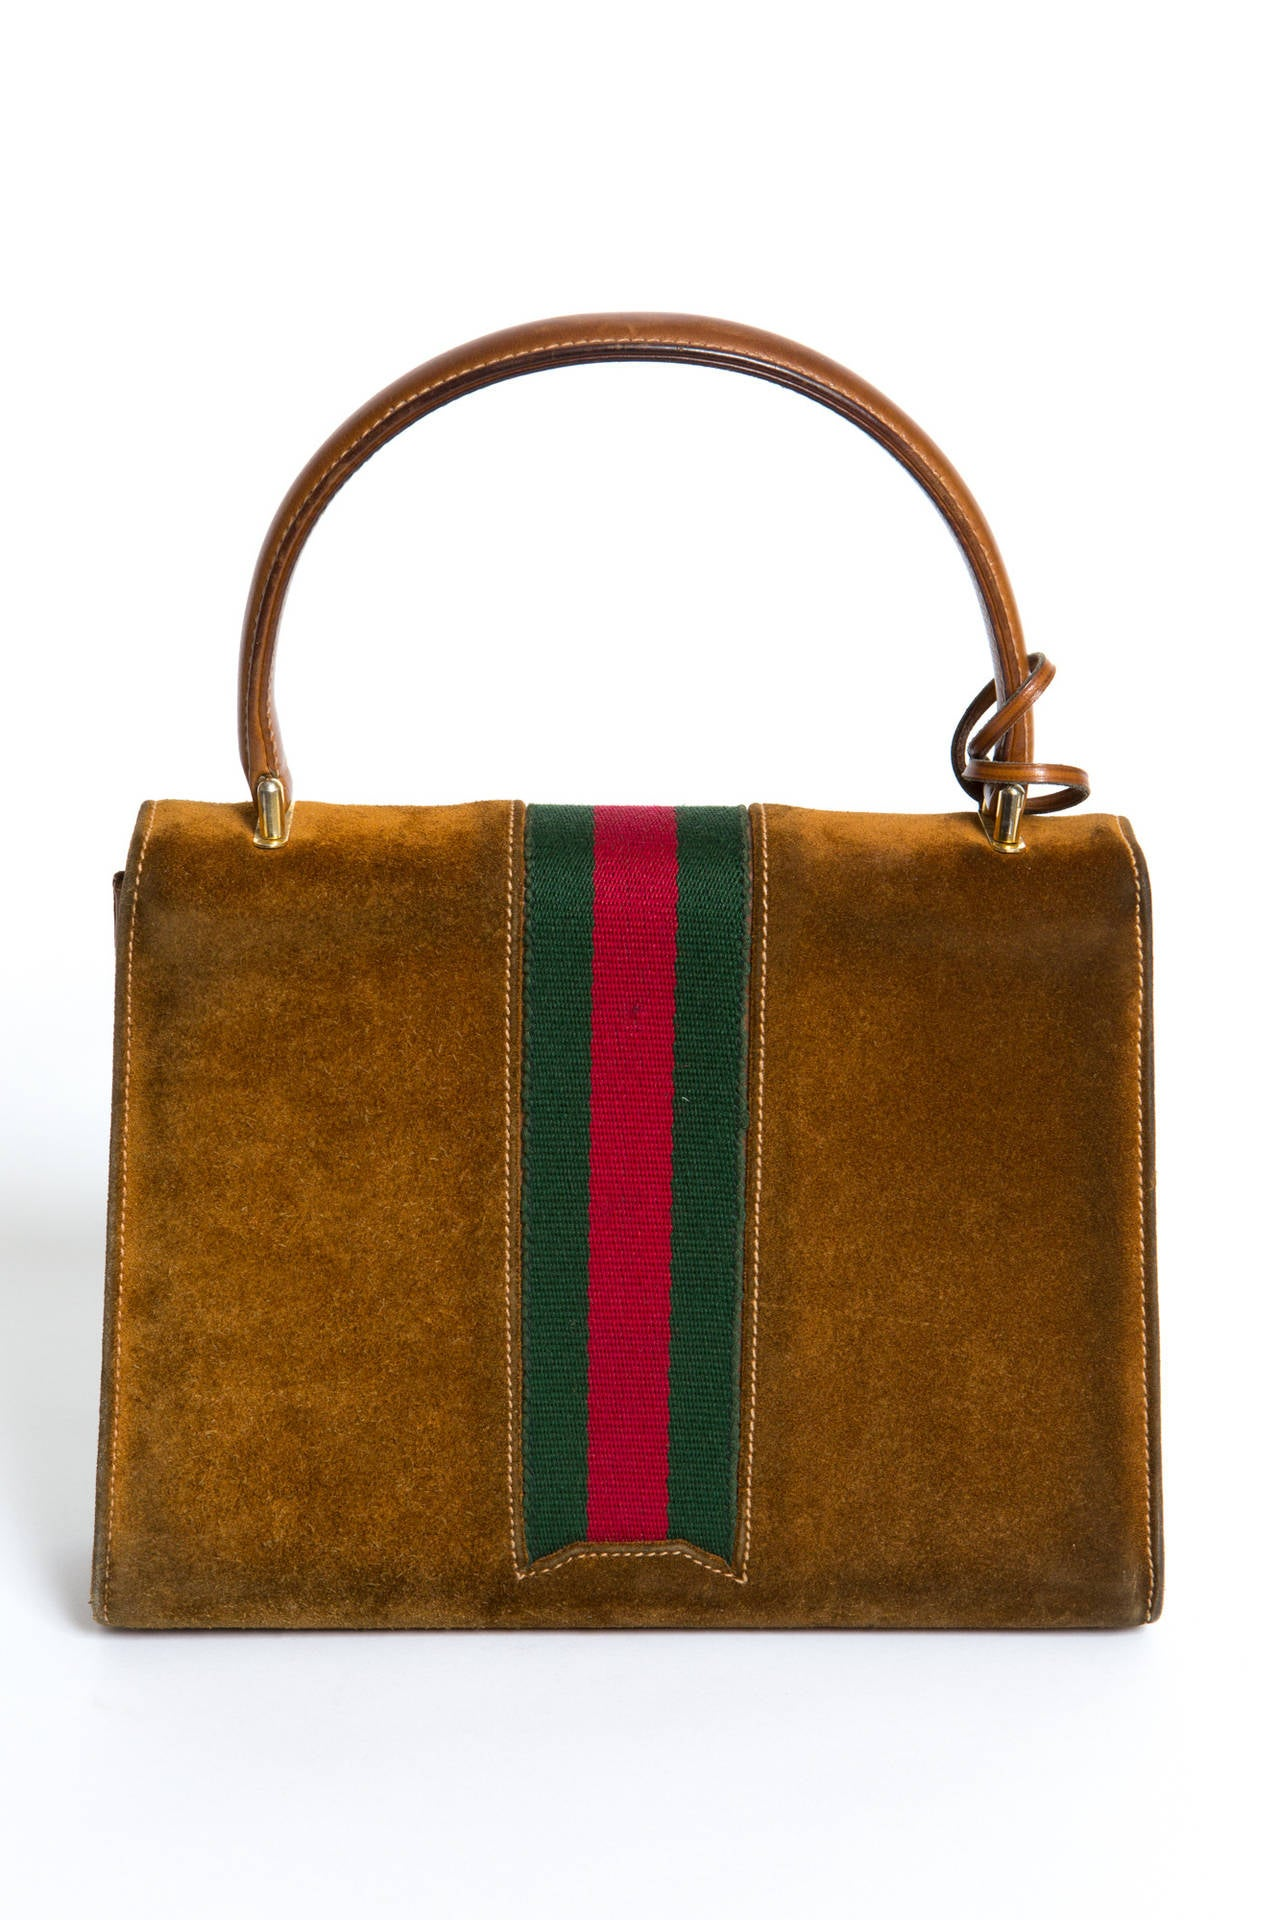 1970s Rare Gucci Camel Bag In Good Condition For Sale In Paris, FR